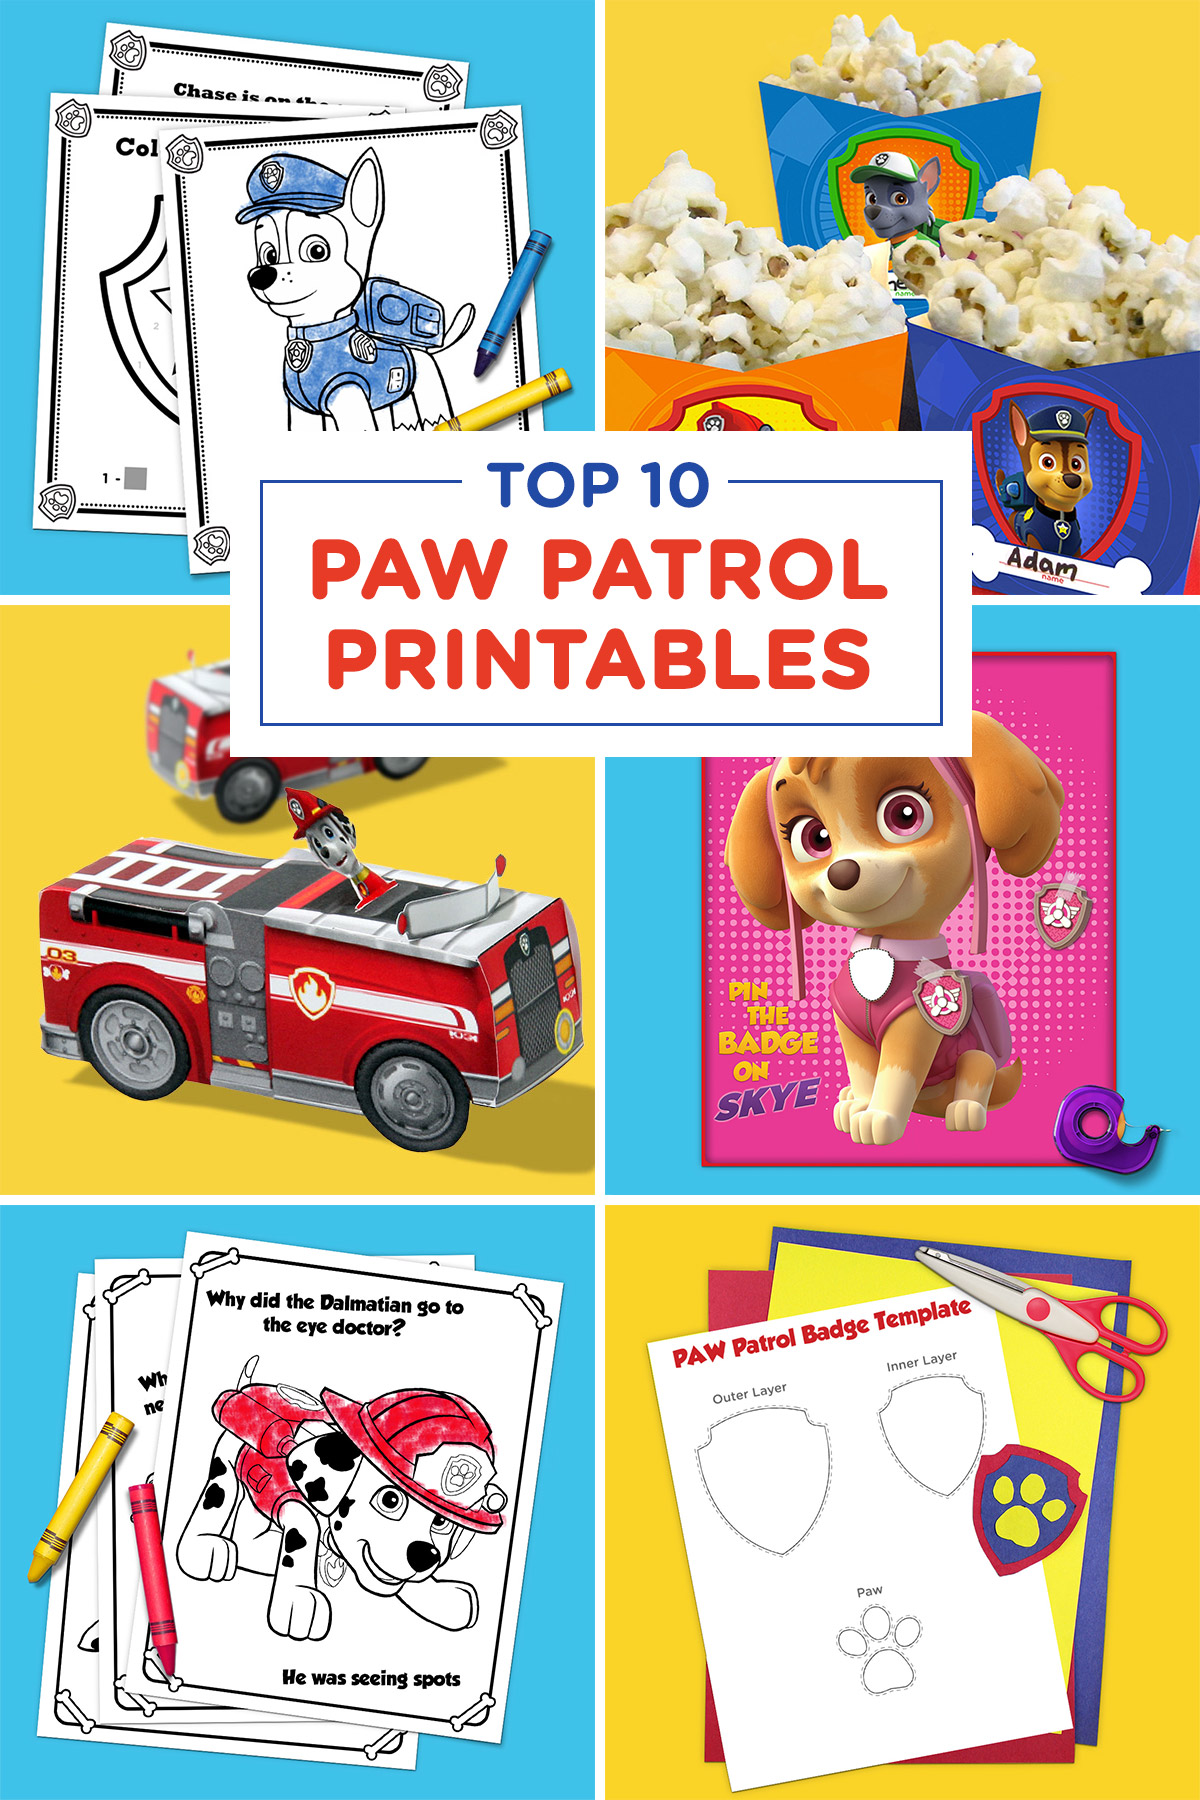 The Top 10 PAW Patrol Printables of All Time | Nickelodeon